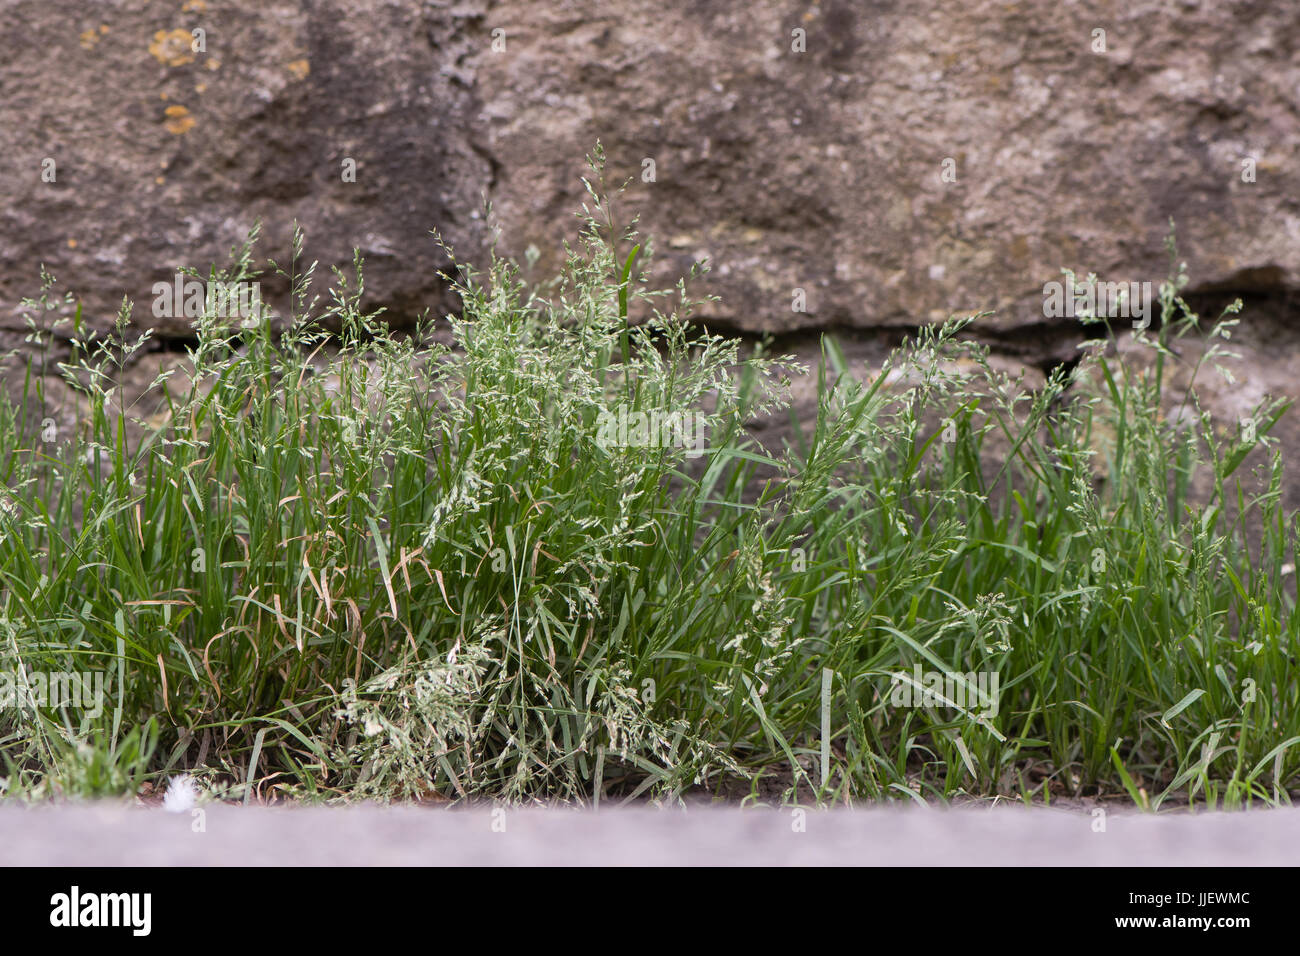 Annual meadow-grass (Poa annua) plants in flower. Abundant sprawling grass in the family Poaceae flowering against - Stock Image